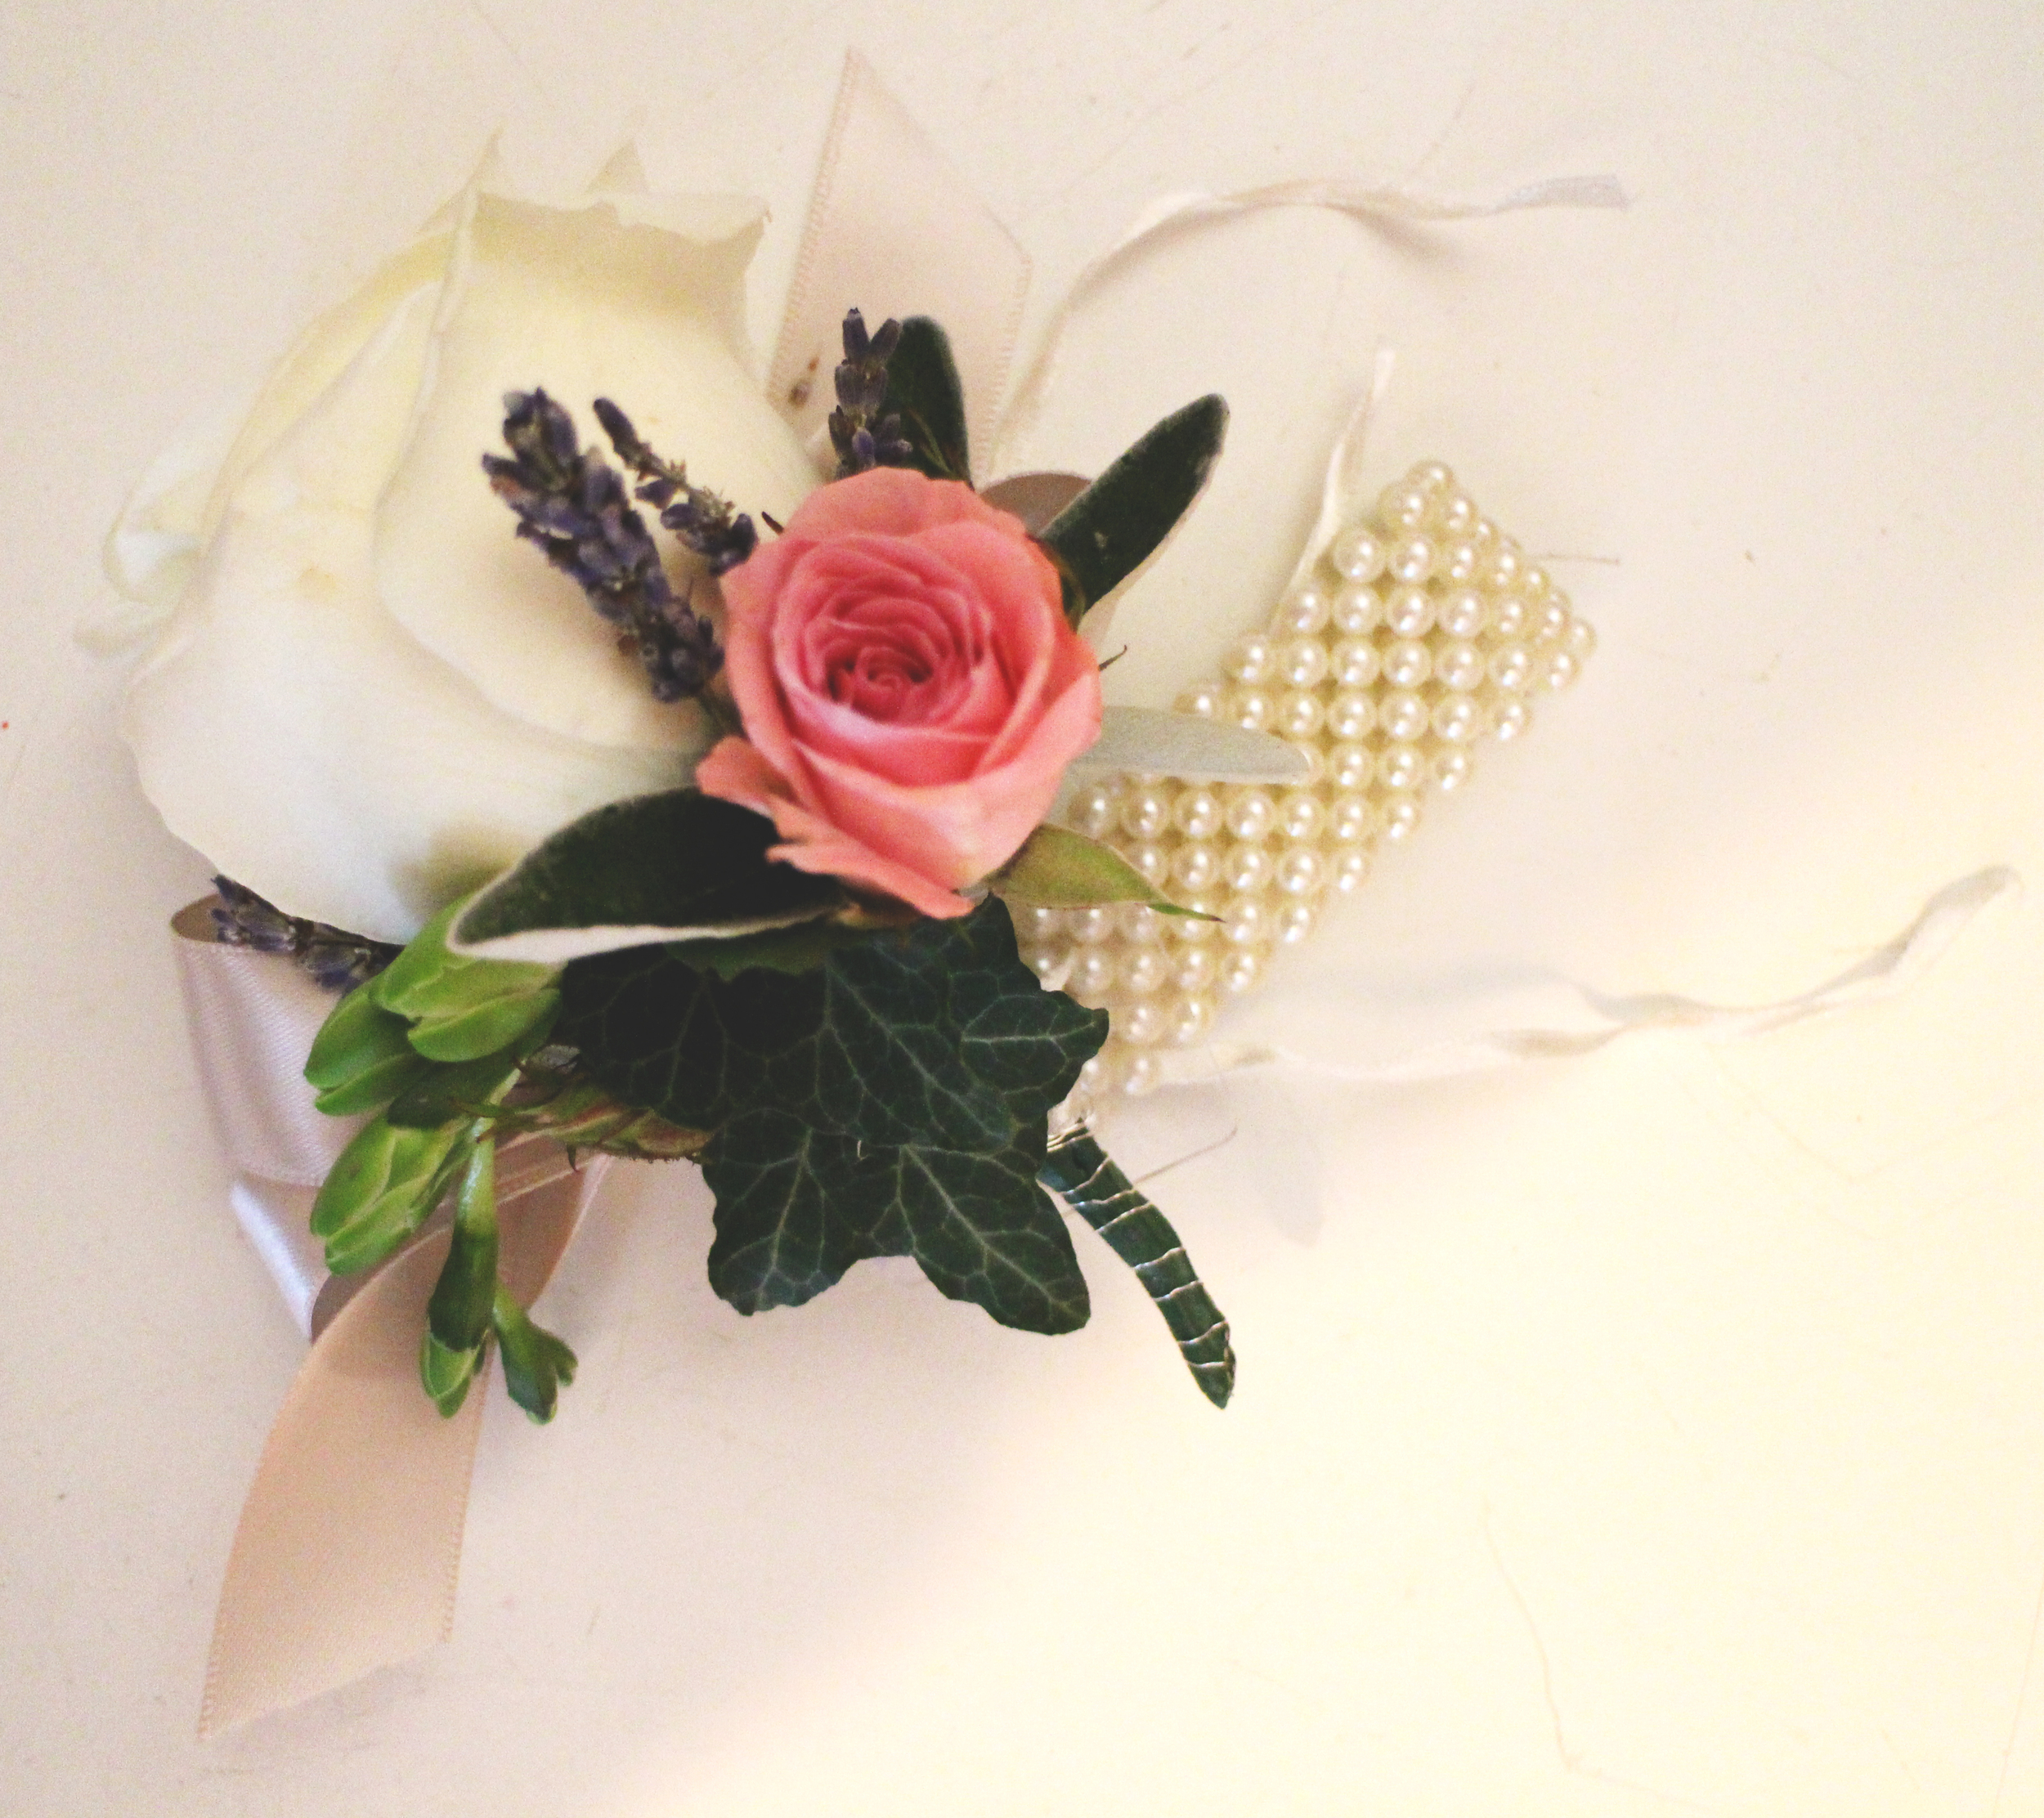 JANUARY: Creating practice wrist corsages